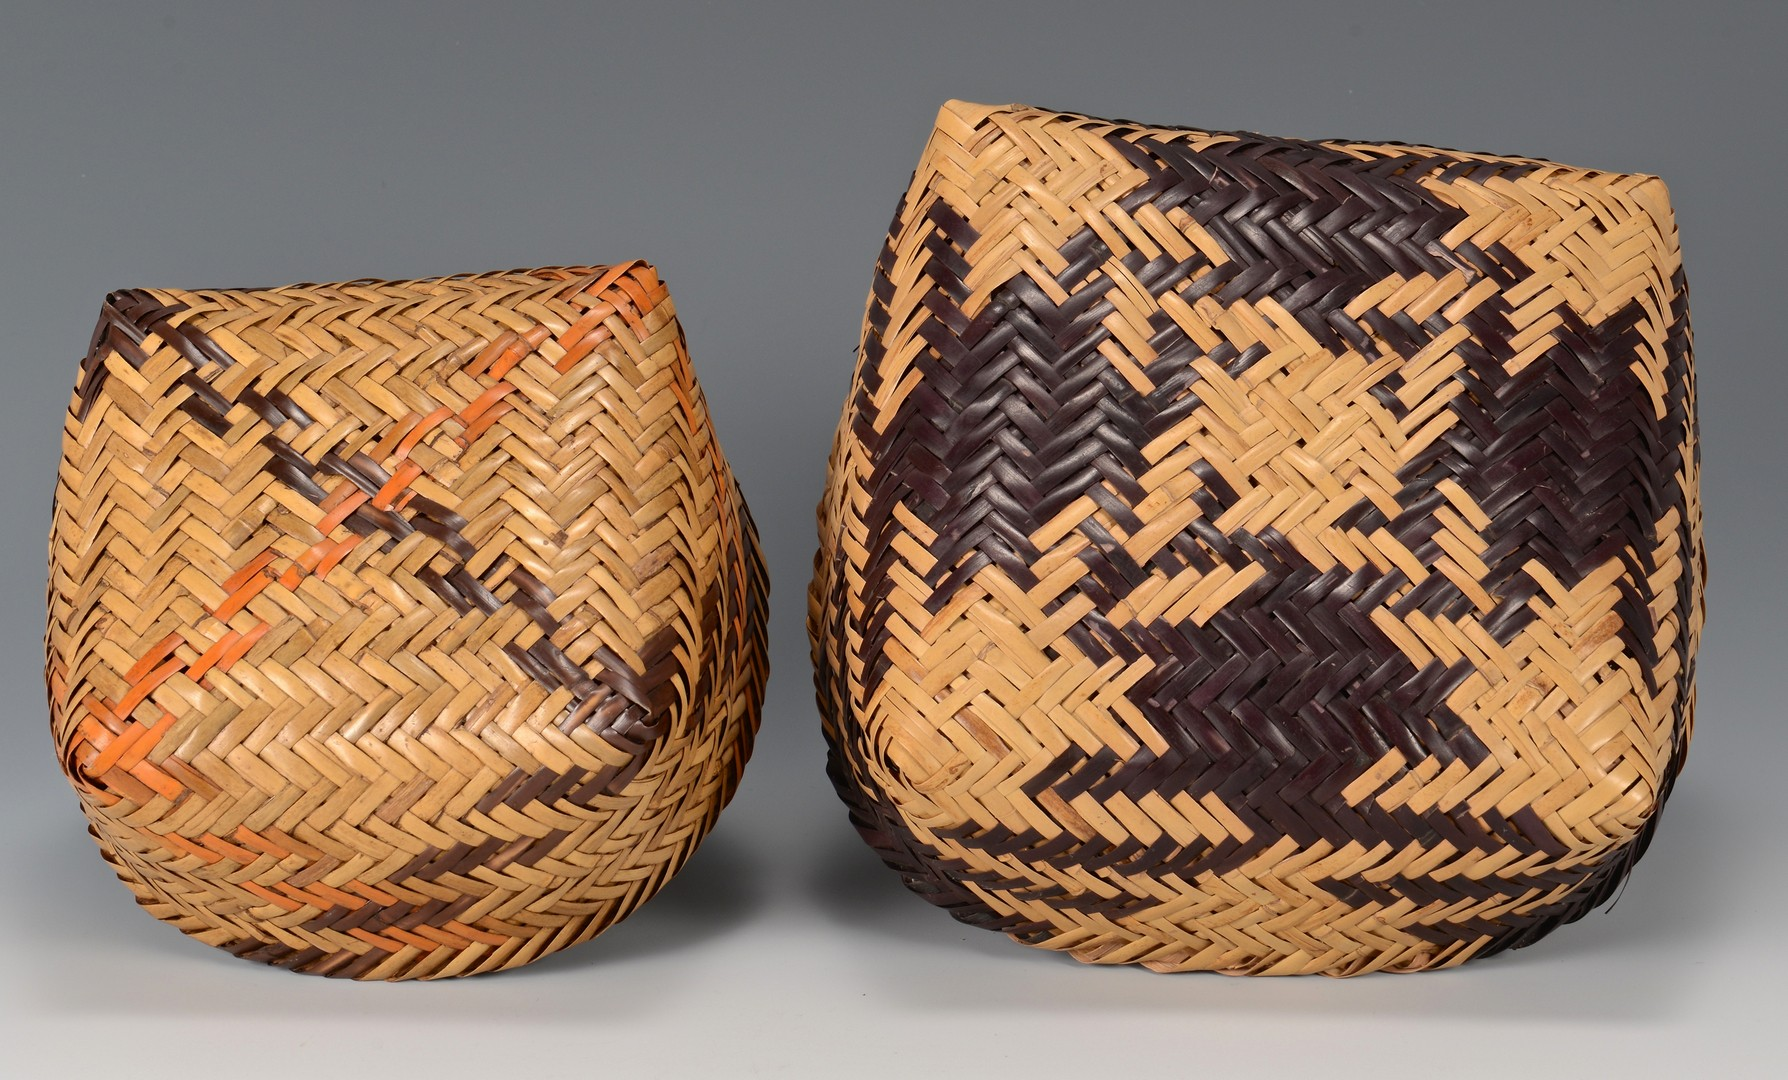 How To Weave A Cane Basket : Lot cherokee double weave cane baskets